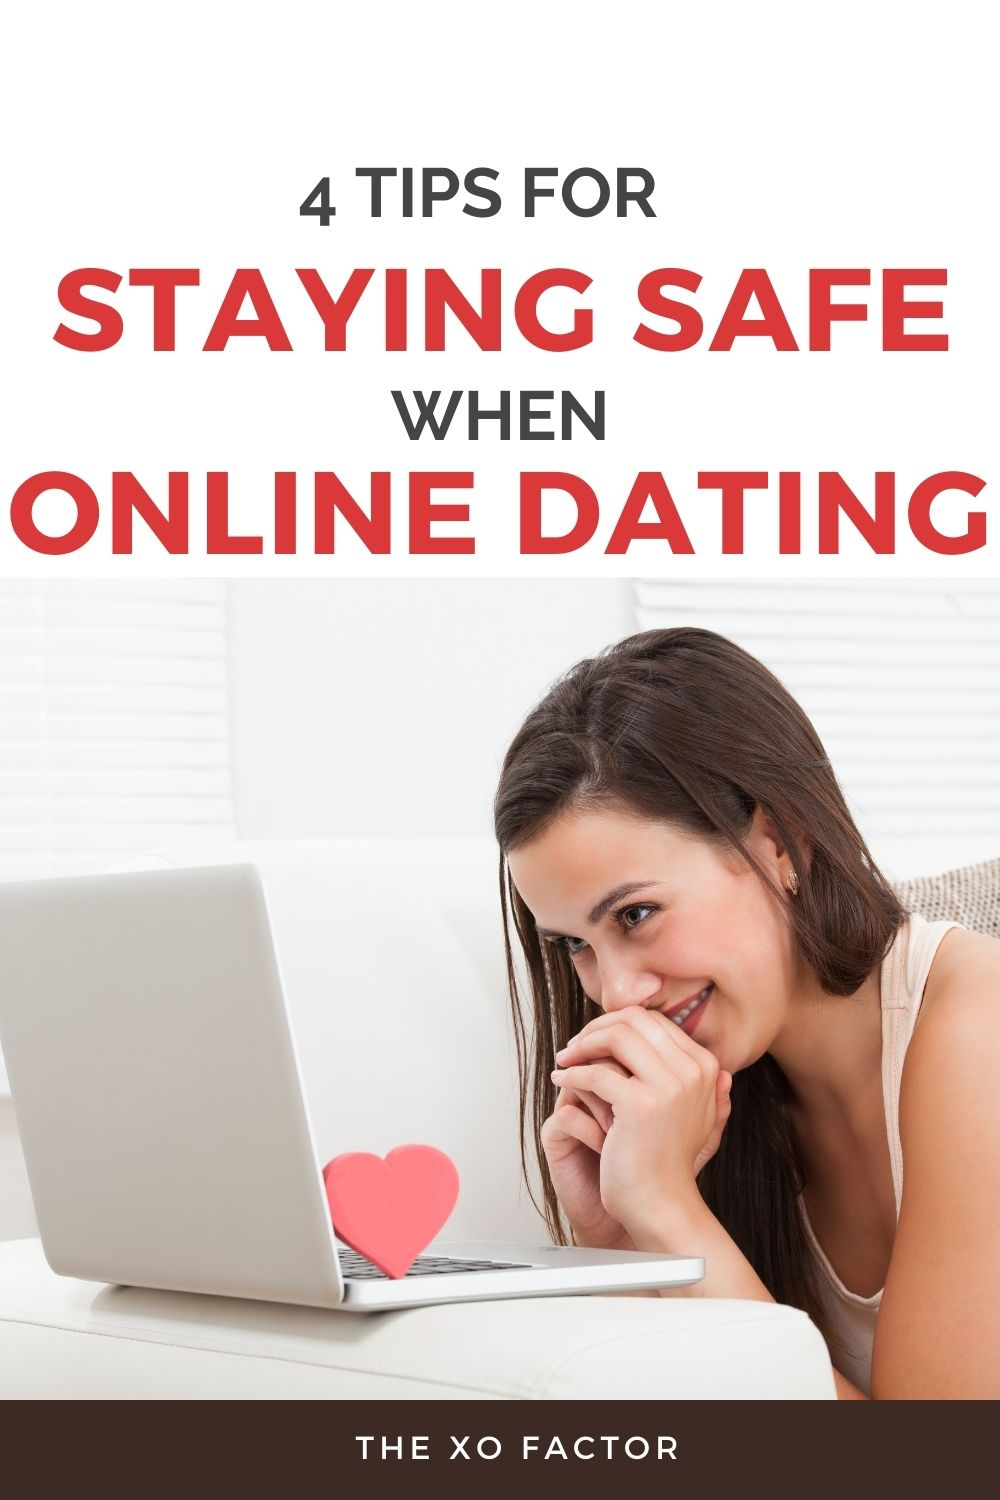 4 tips for taying safe when online dating